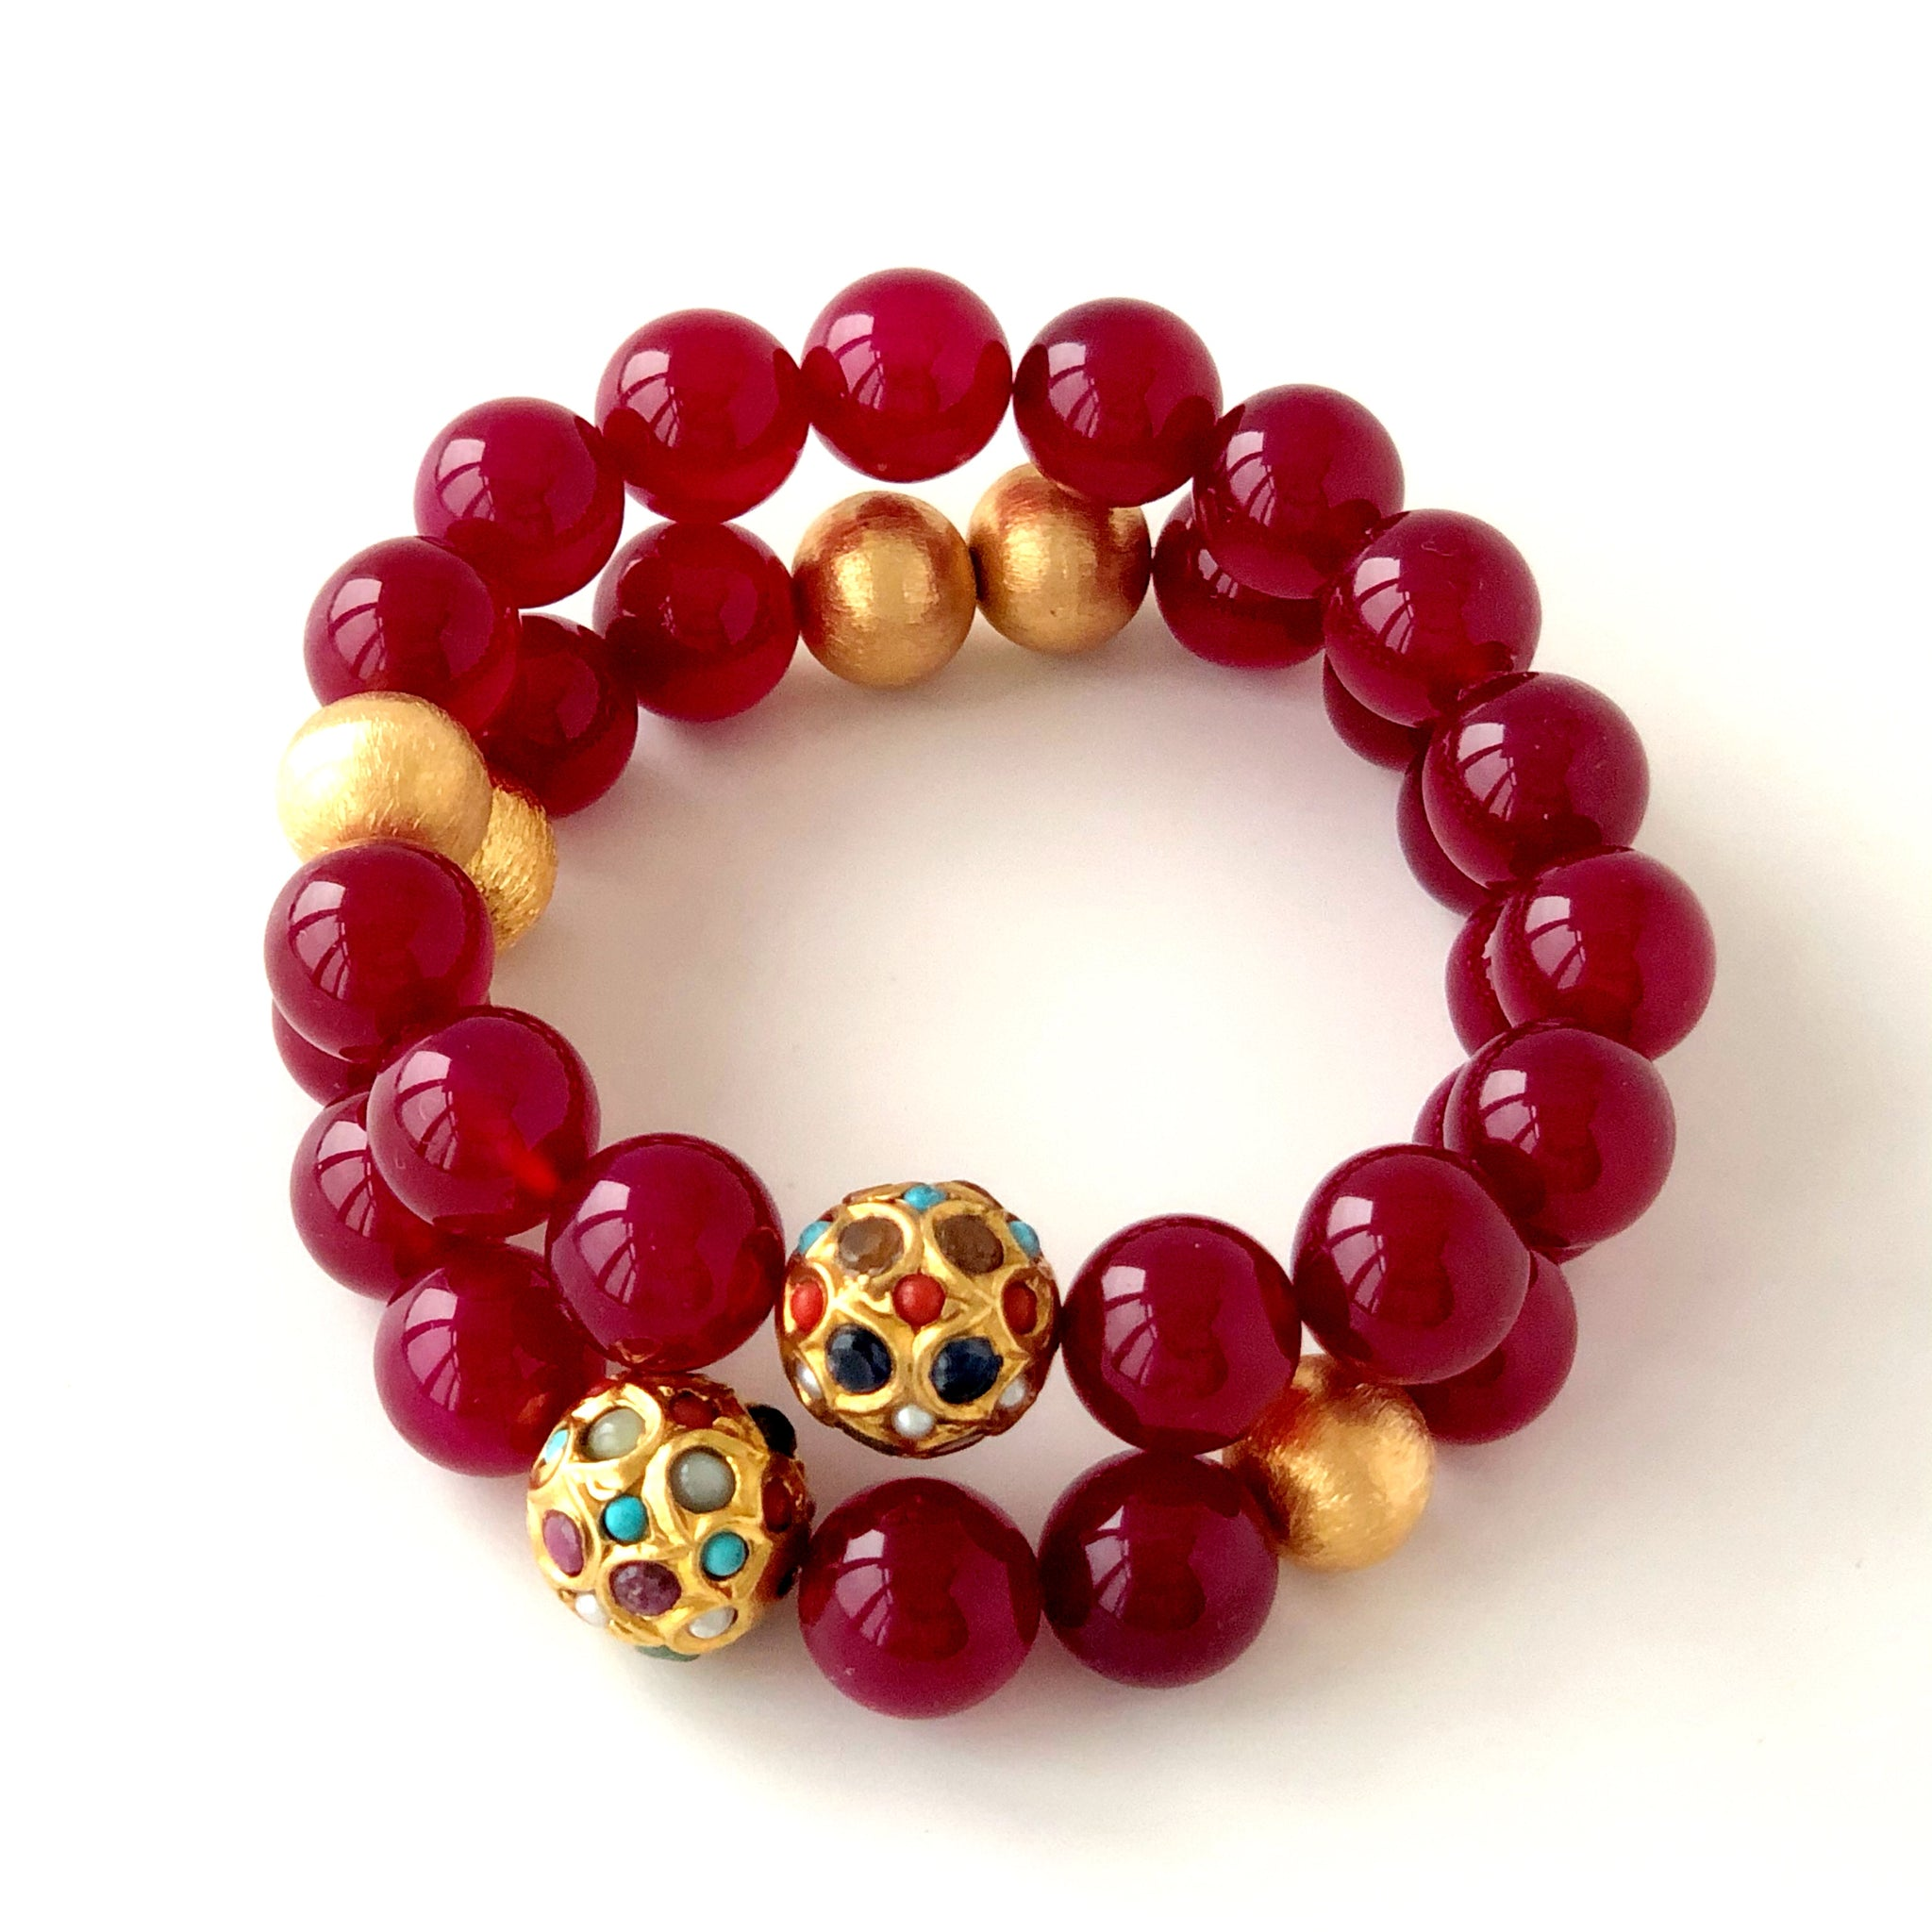 Cherry Agate with Gold and Multistone beads